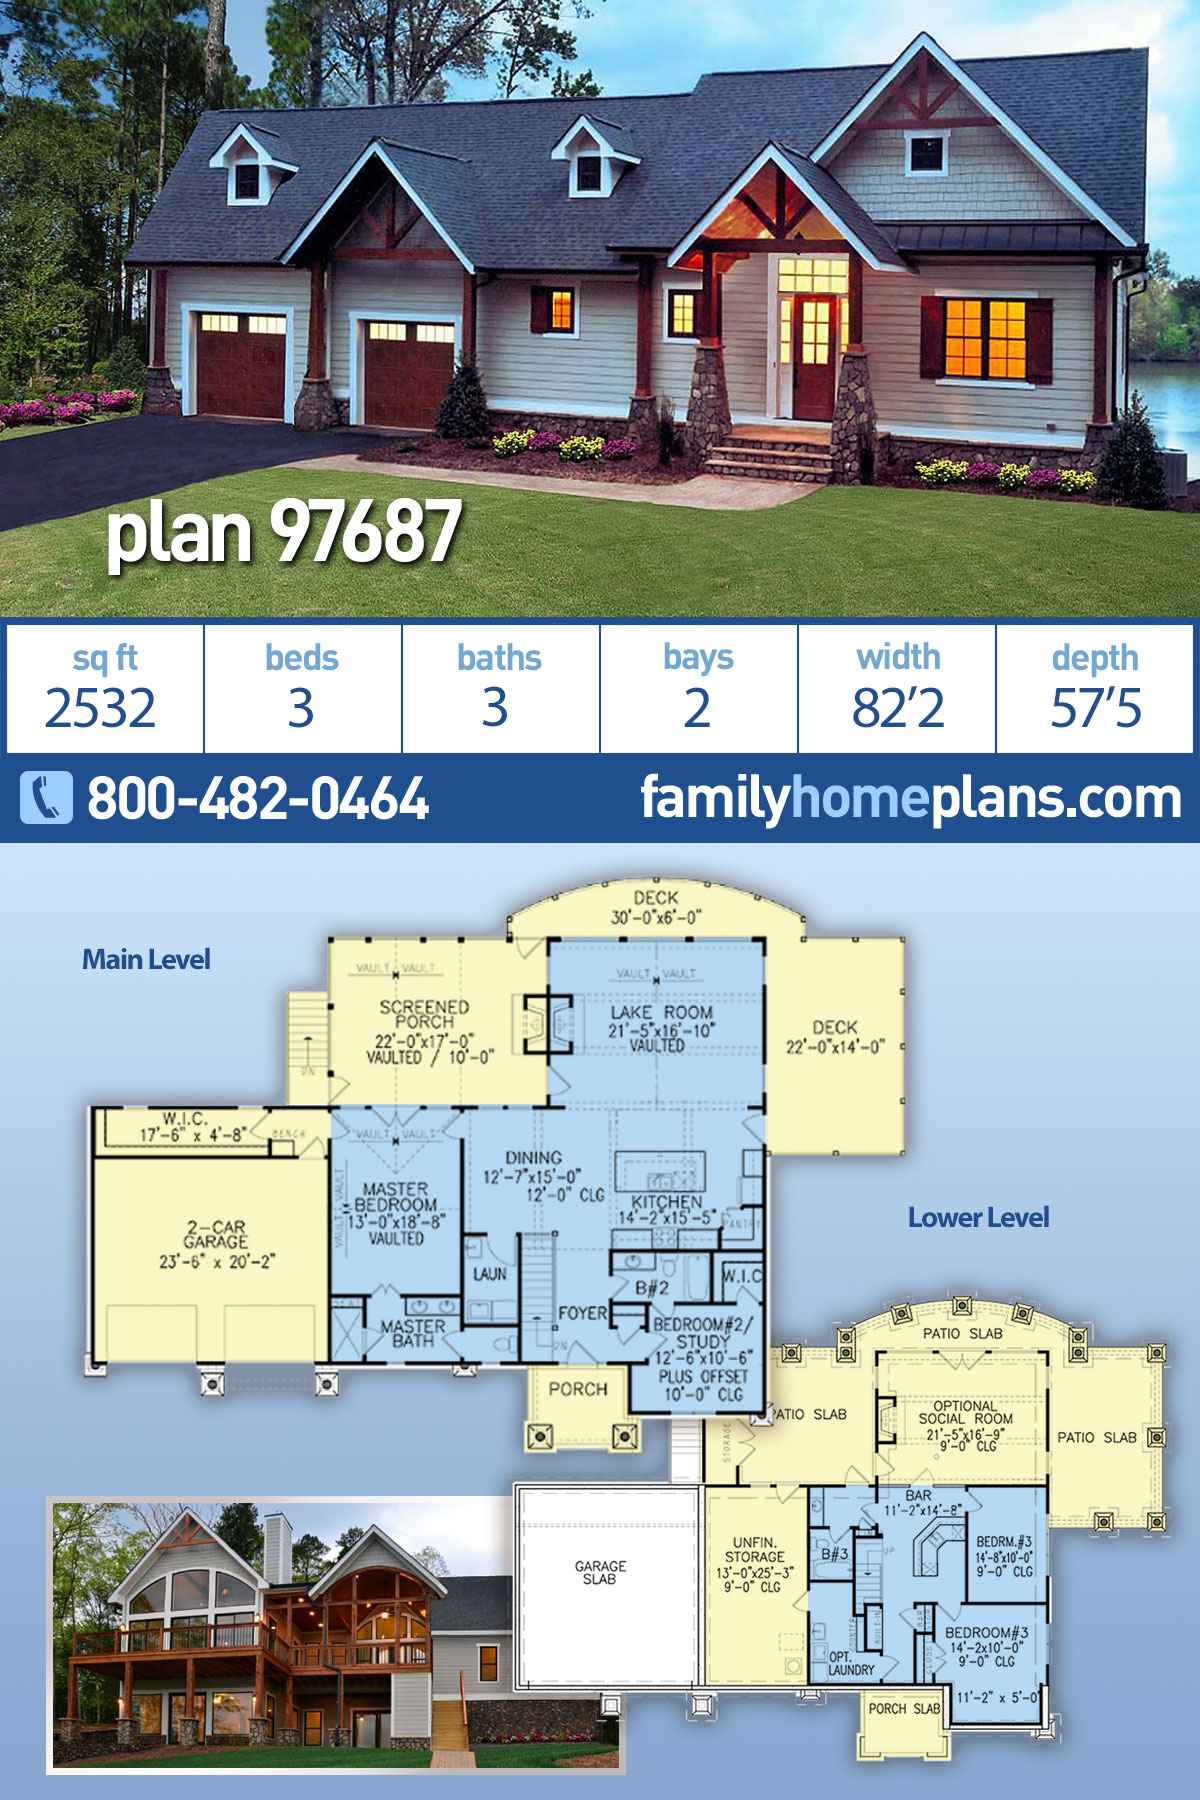 Craftsman, One-Story, Ranch, Traditional House Plan 97687 with 3 Beds, 3 Baths, 2 Car Garage